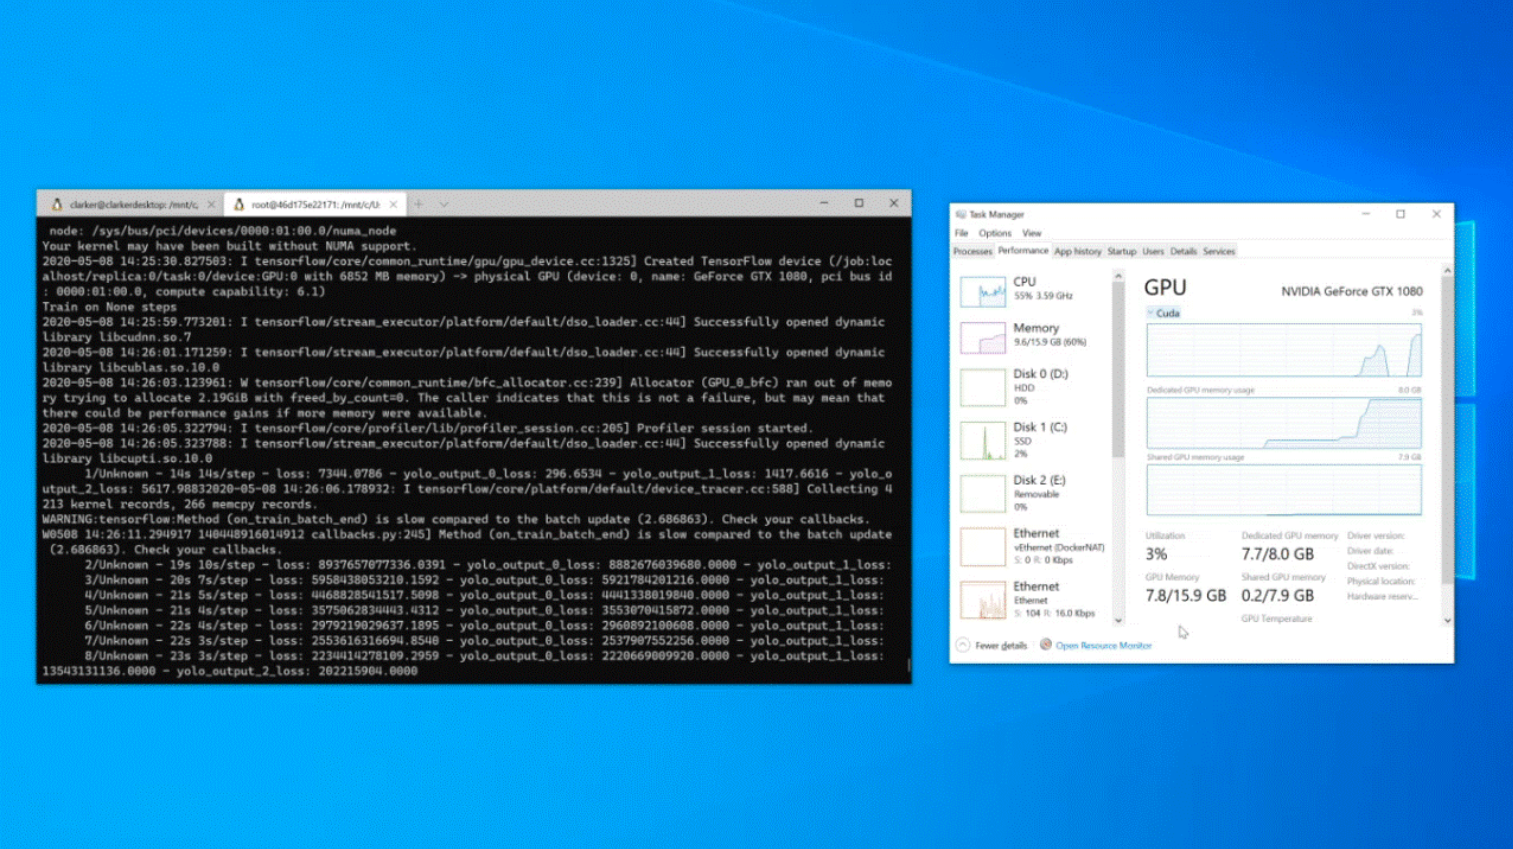 Windows 10 Insider Preview Build 20150